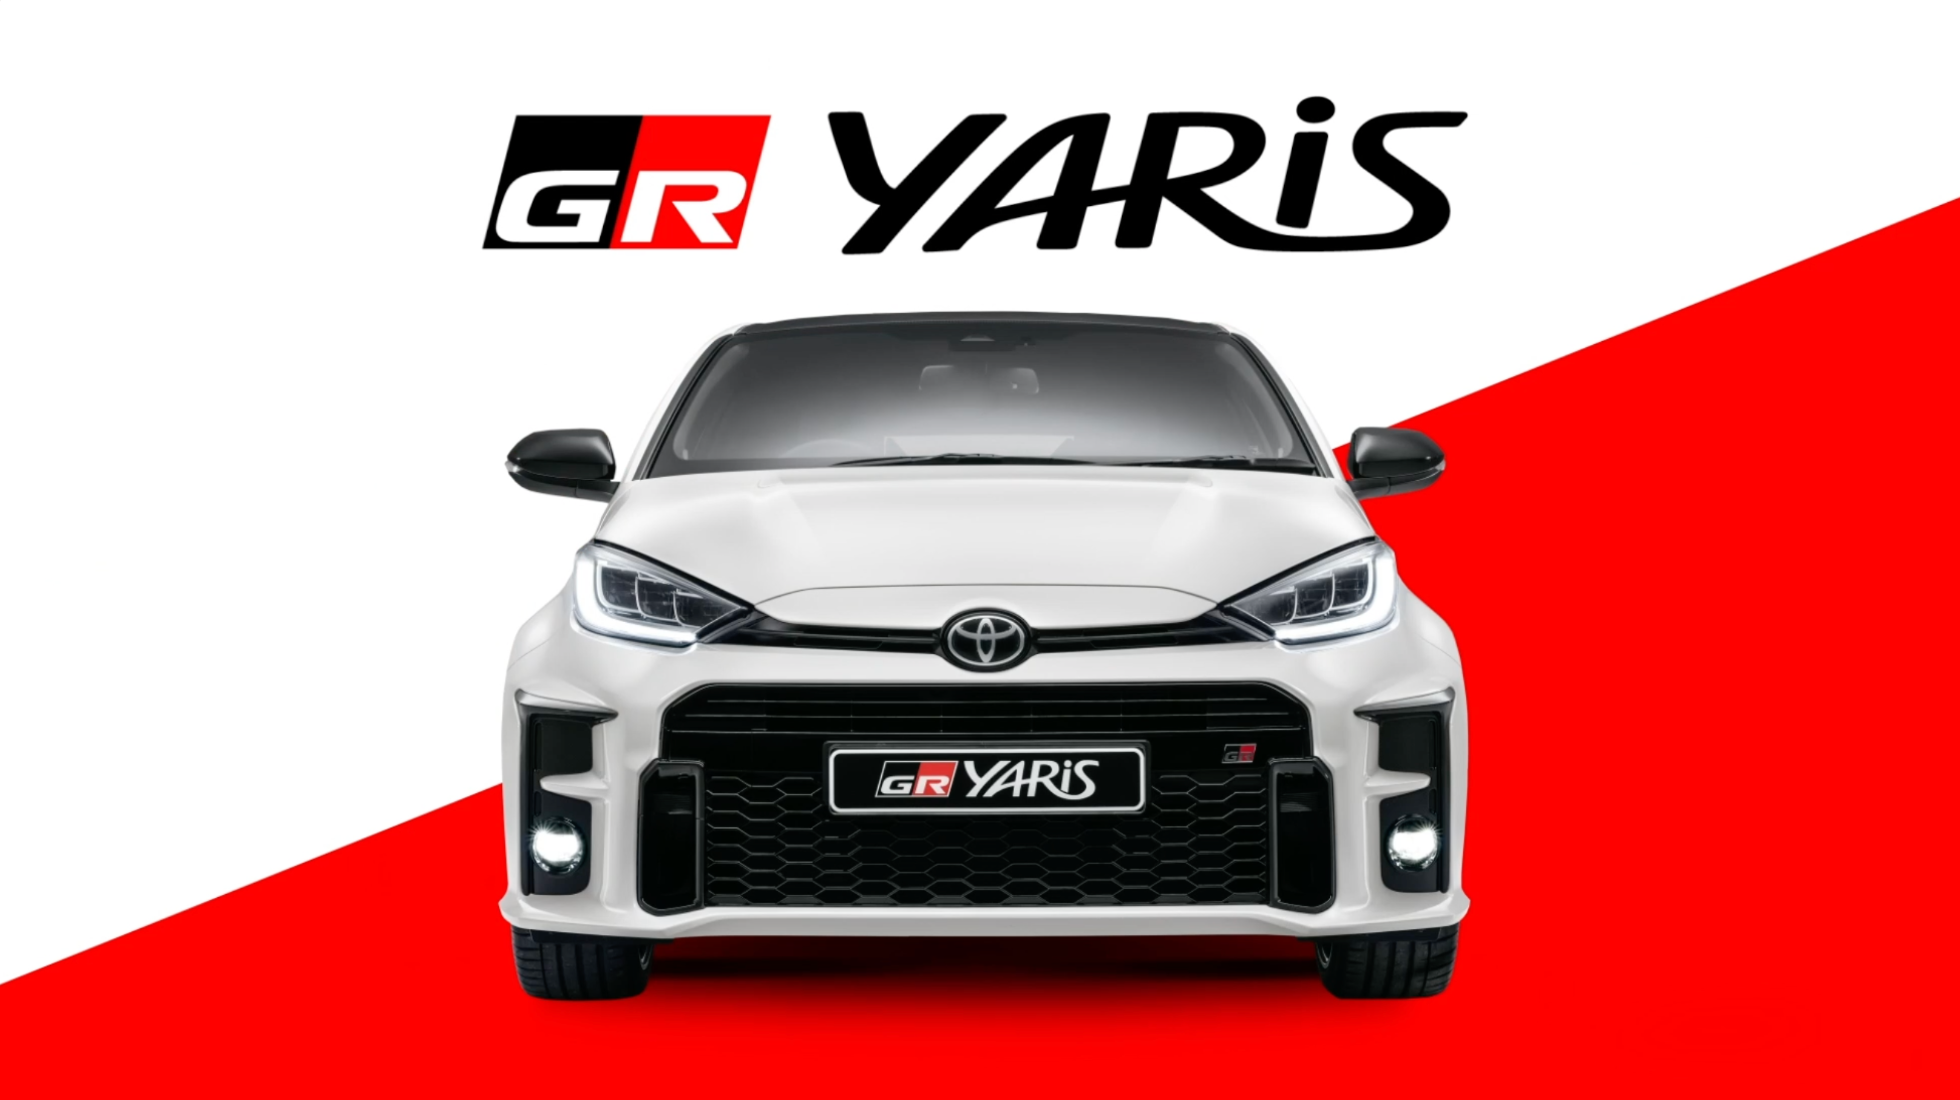 VIDEO ADVERTORIAL: The GR Yaris has hit South African soil.